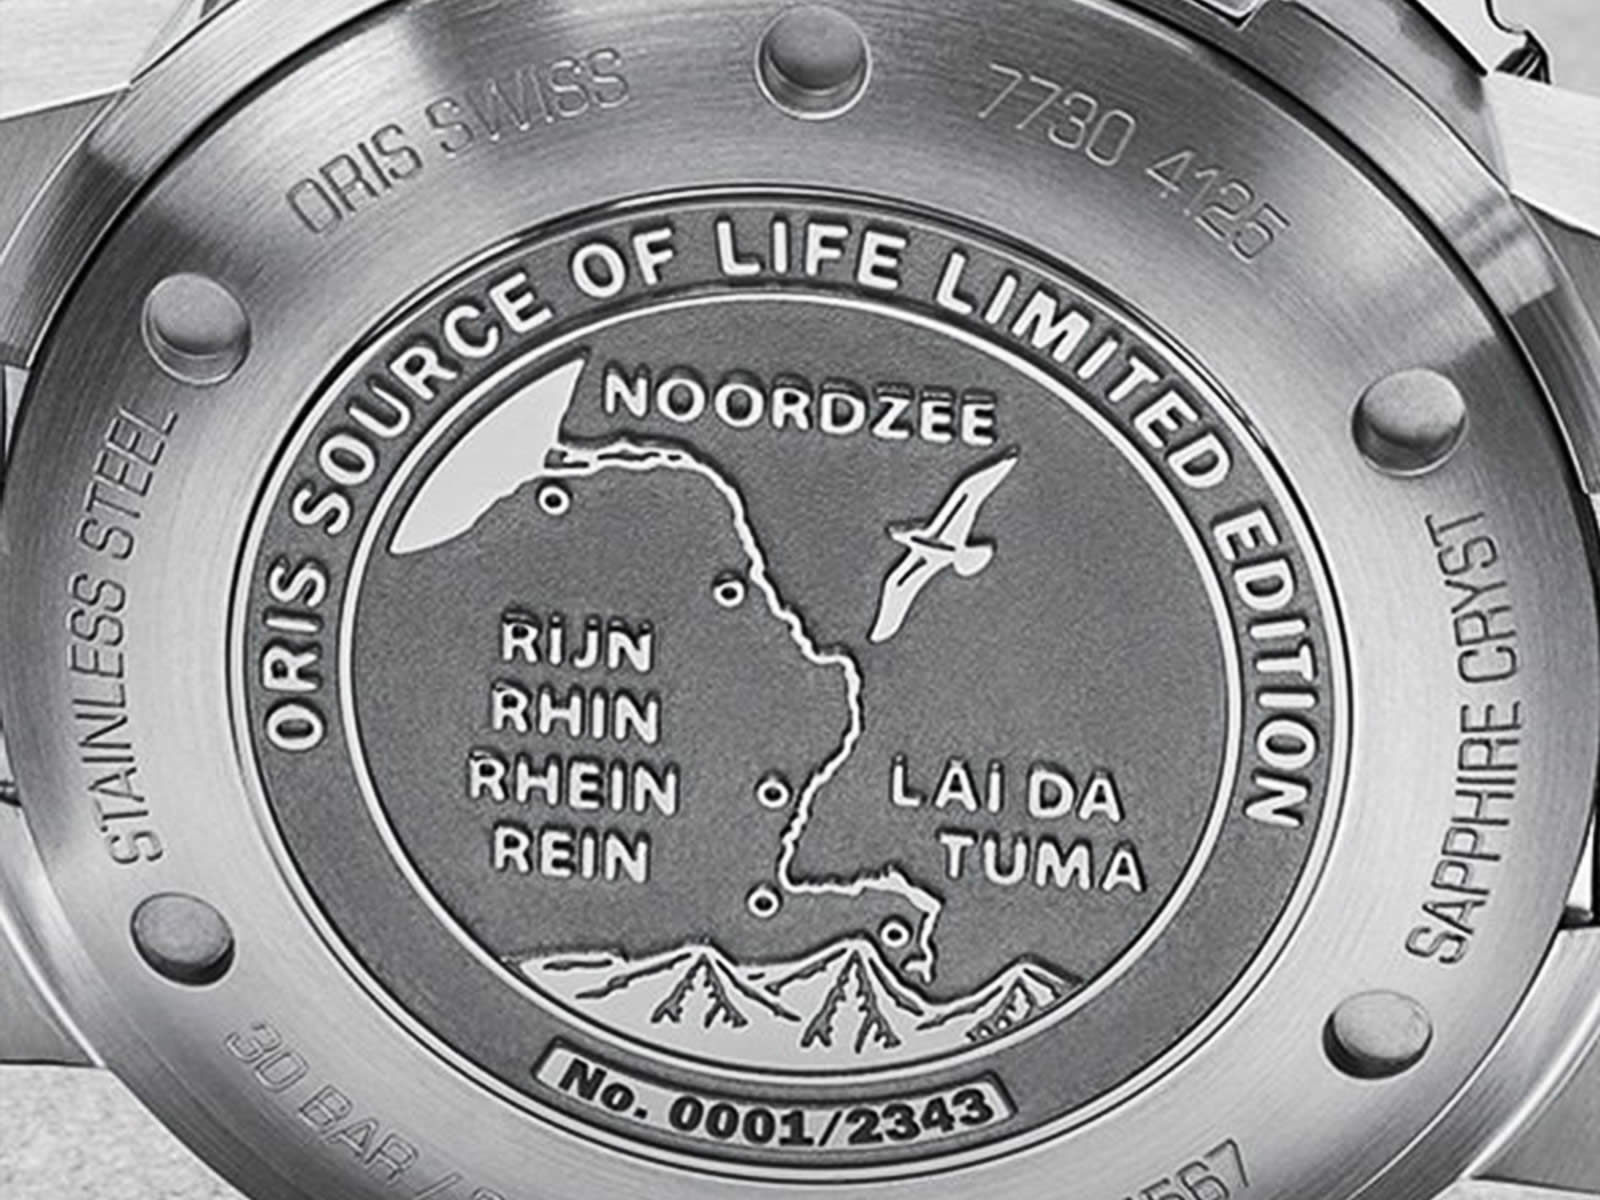 01-733-7730-4125-oris-source-of-life-limited-edition-9-.jpg